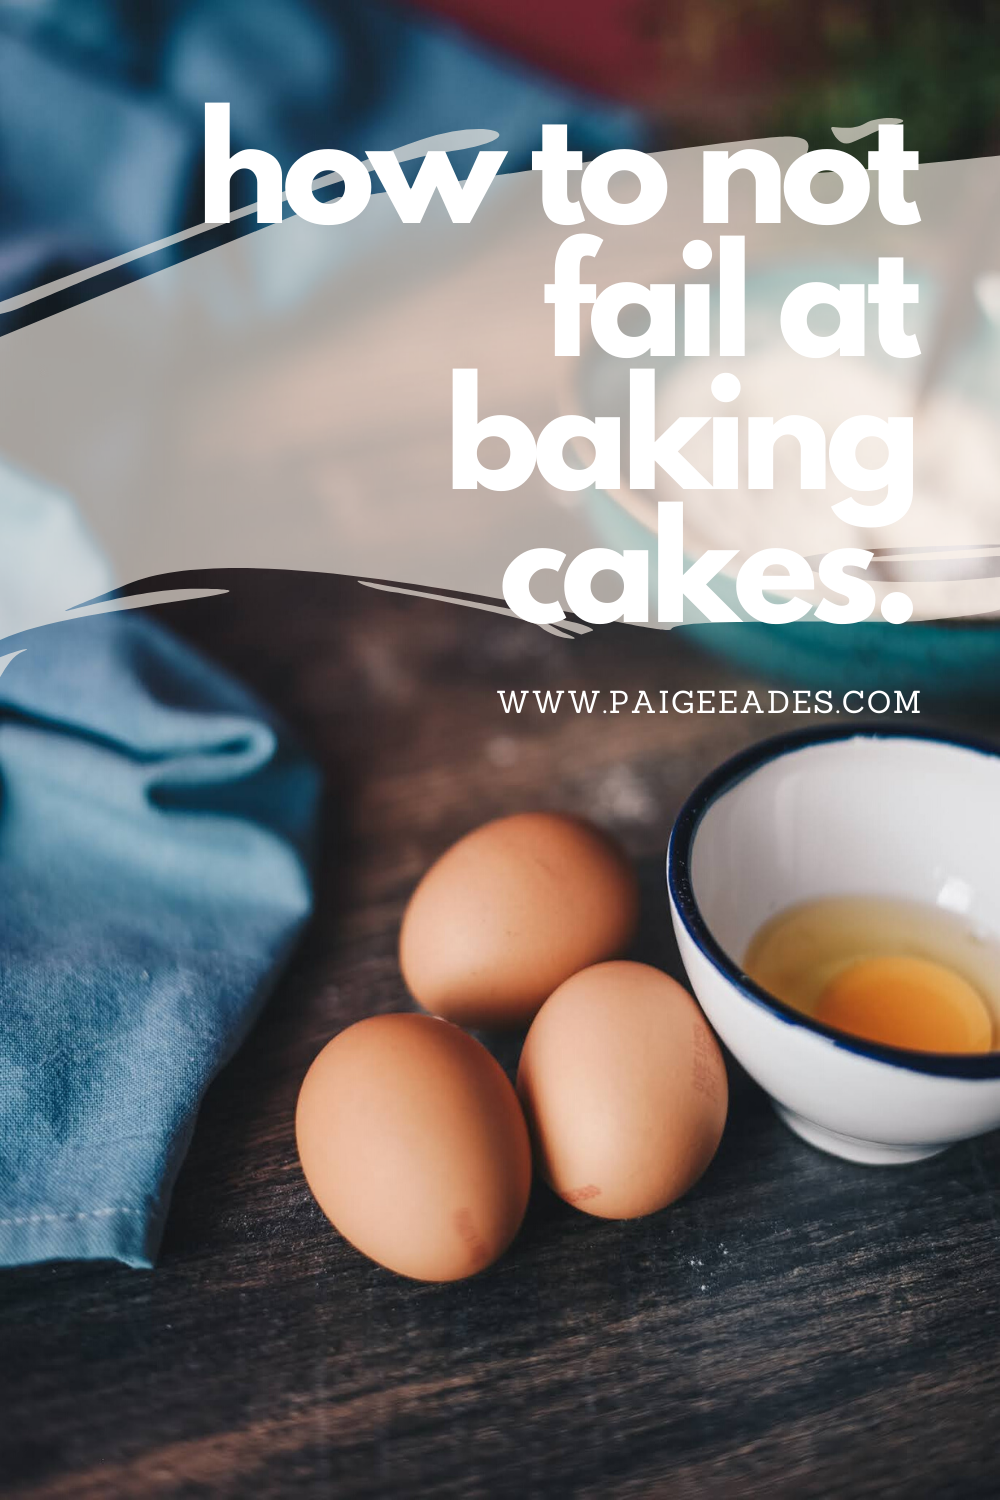 Ever wondered what was going wrong with your cakes? Why are your cakes just not working? Use these tips to ensure your cakes never fail again!